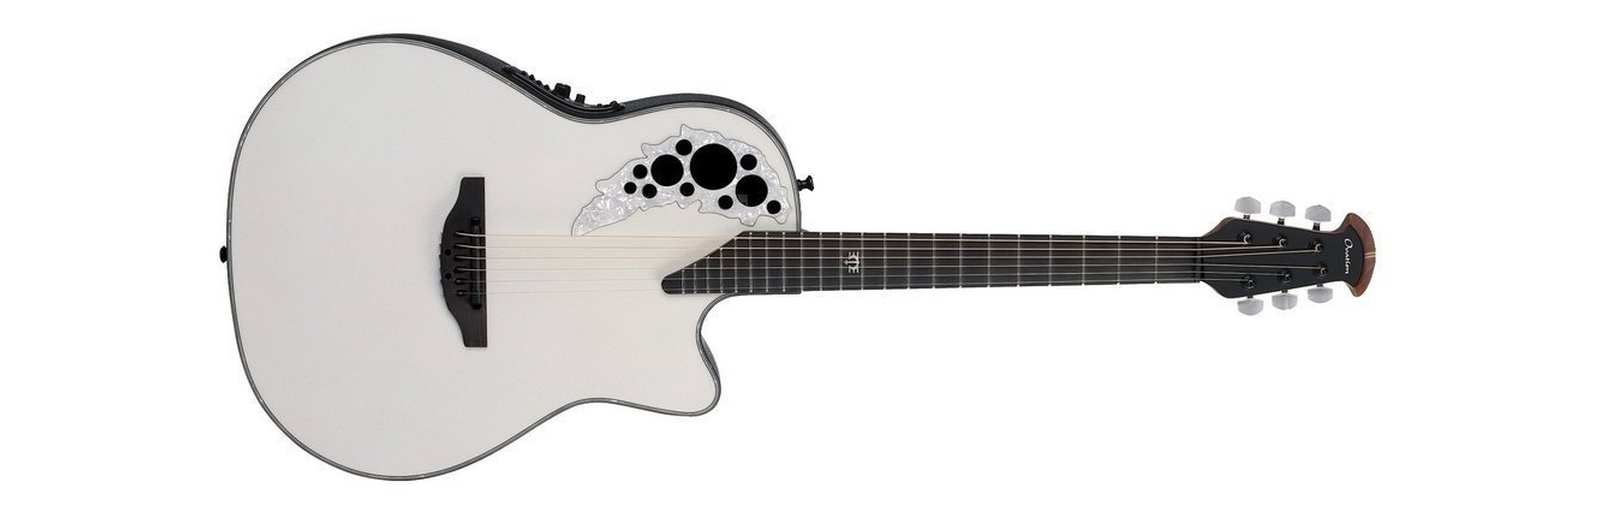 Ovation 2078ME-6P ELITE Signature Melissa Etheridge